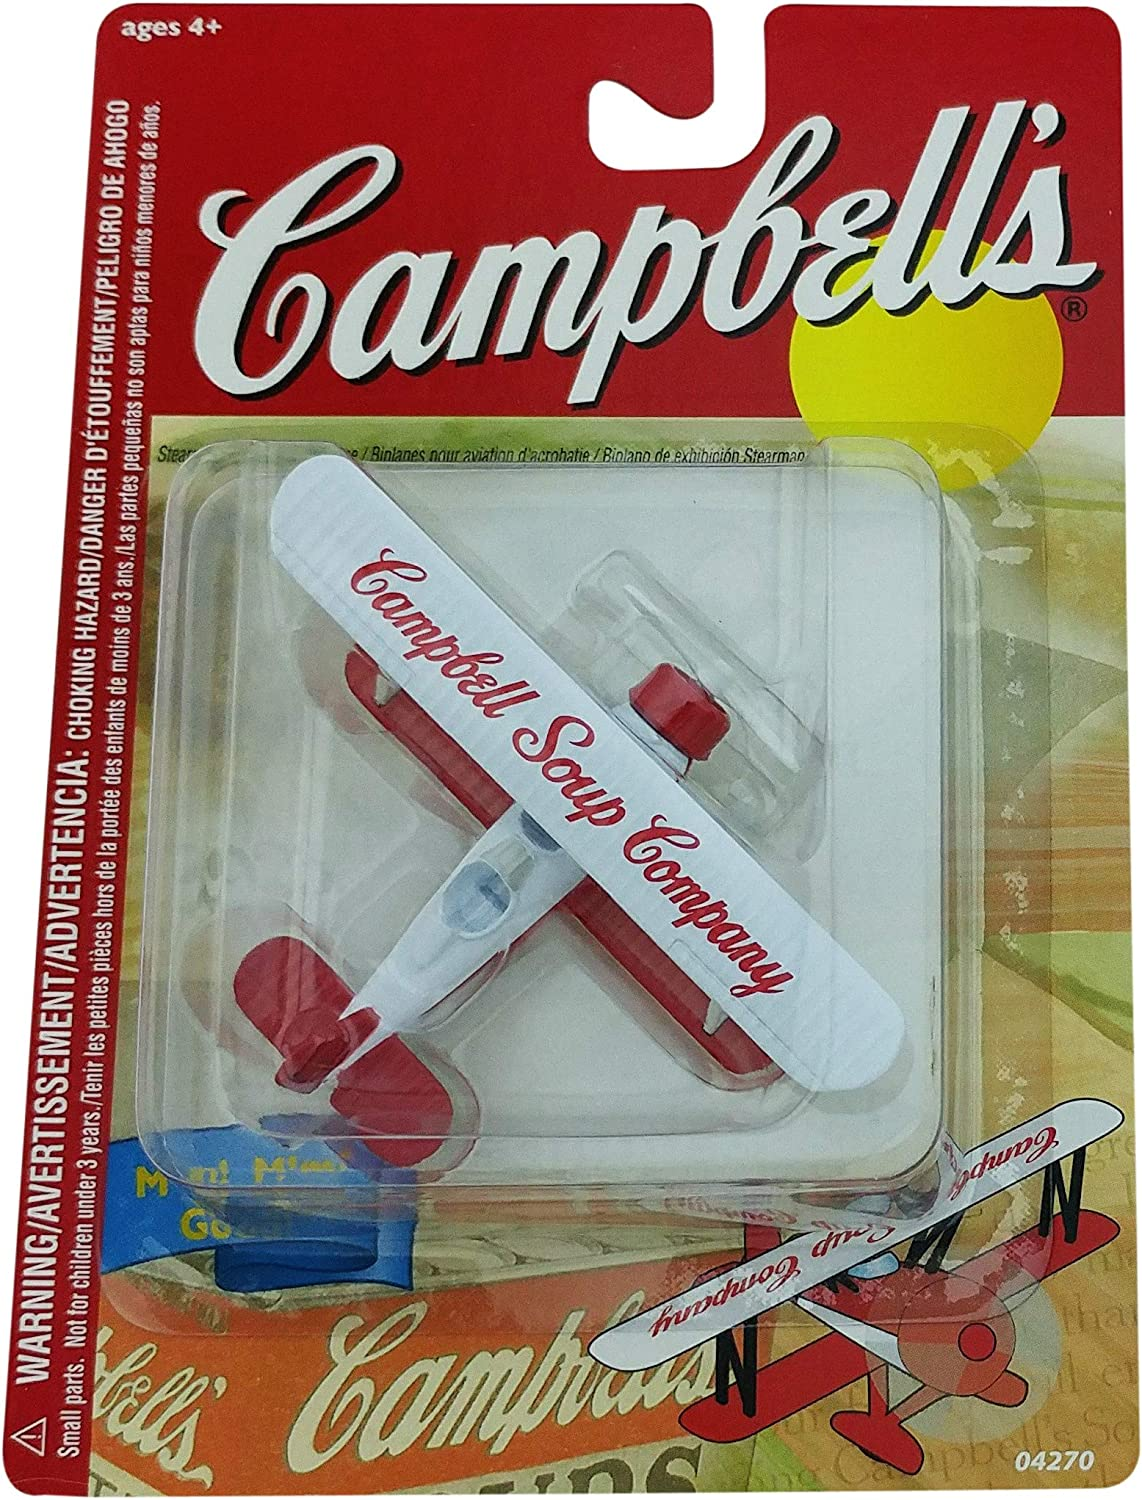 Campbell's Soup Company Stearman Barnstormer Biplane by Gearbox Toys